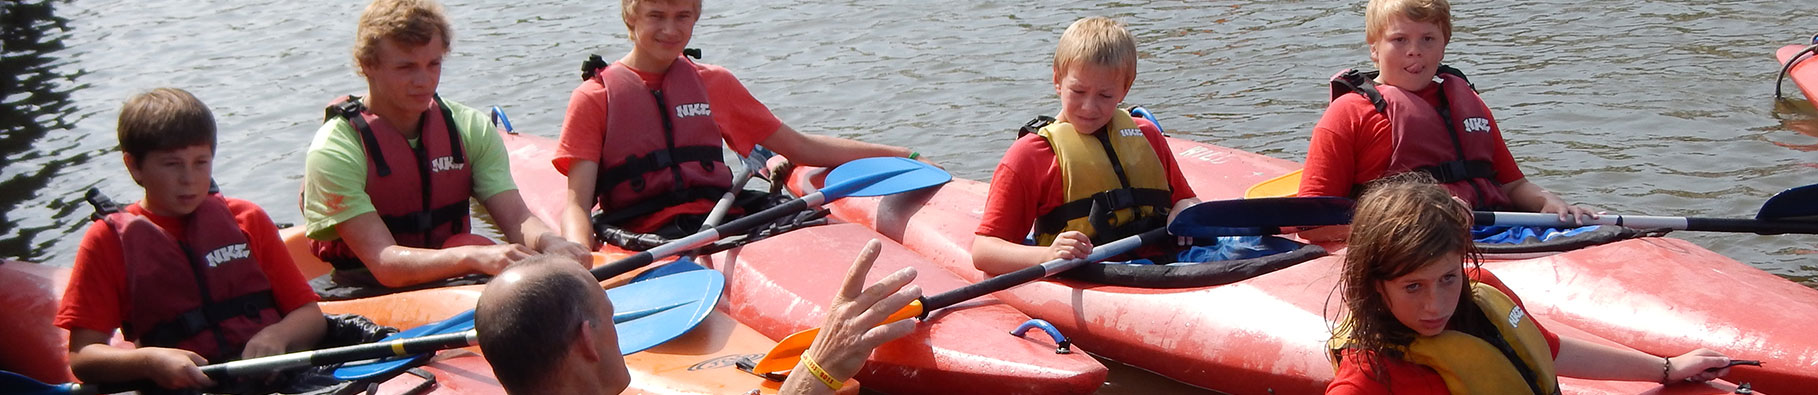 Canal kayaking course at Shoreline in Bude, Cornwall